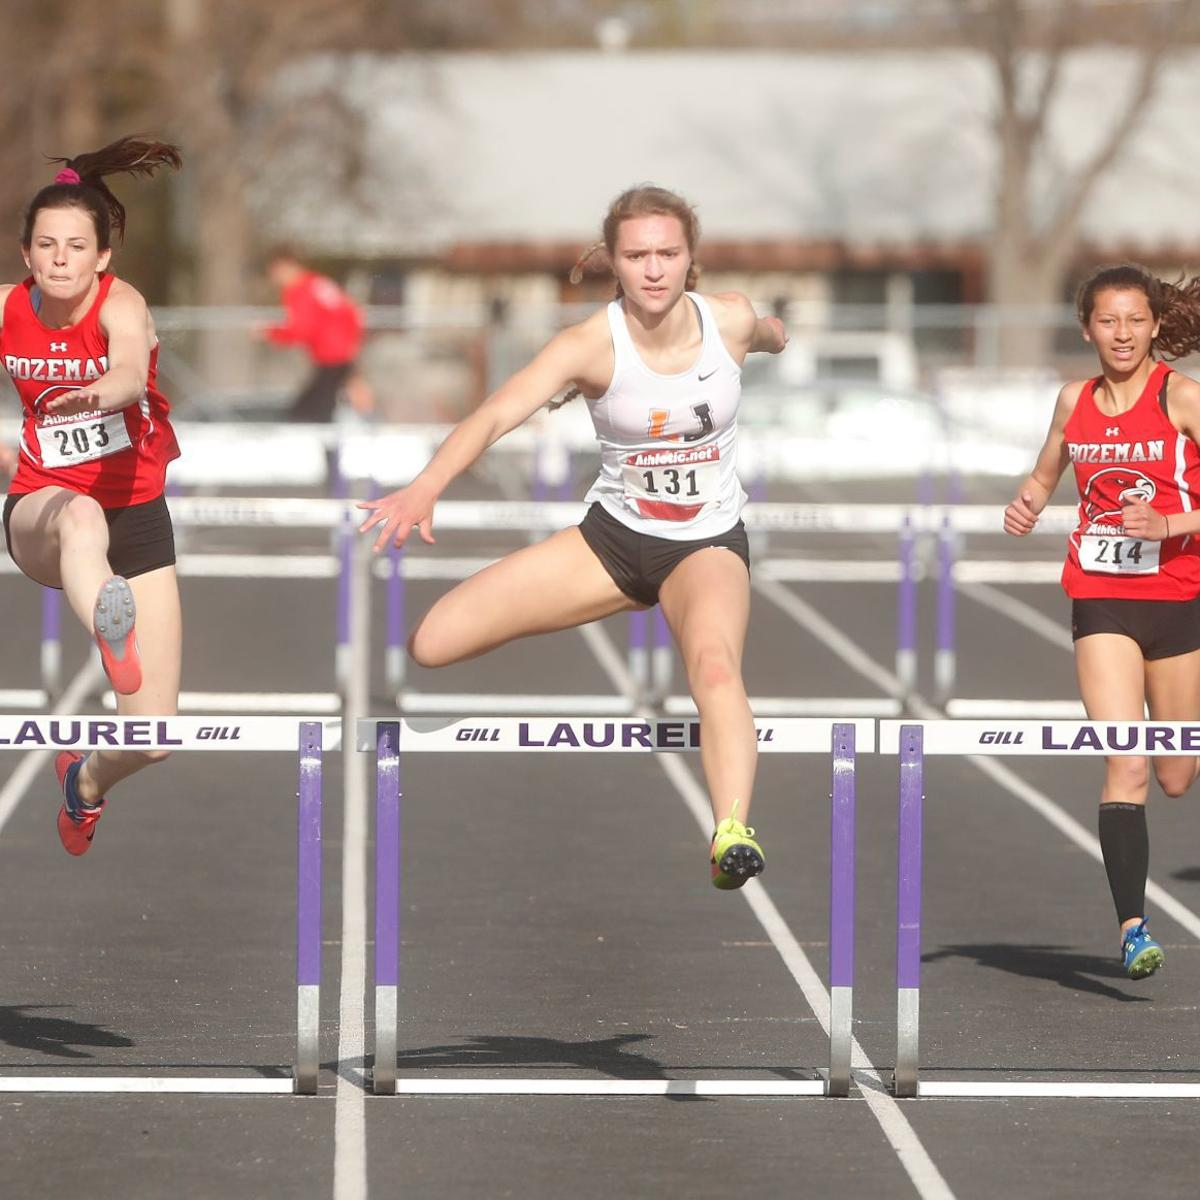 Oldest record falls at Midland Roundtable Top 10 track and